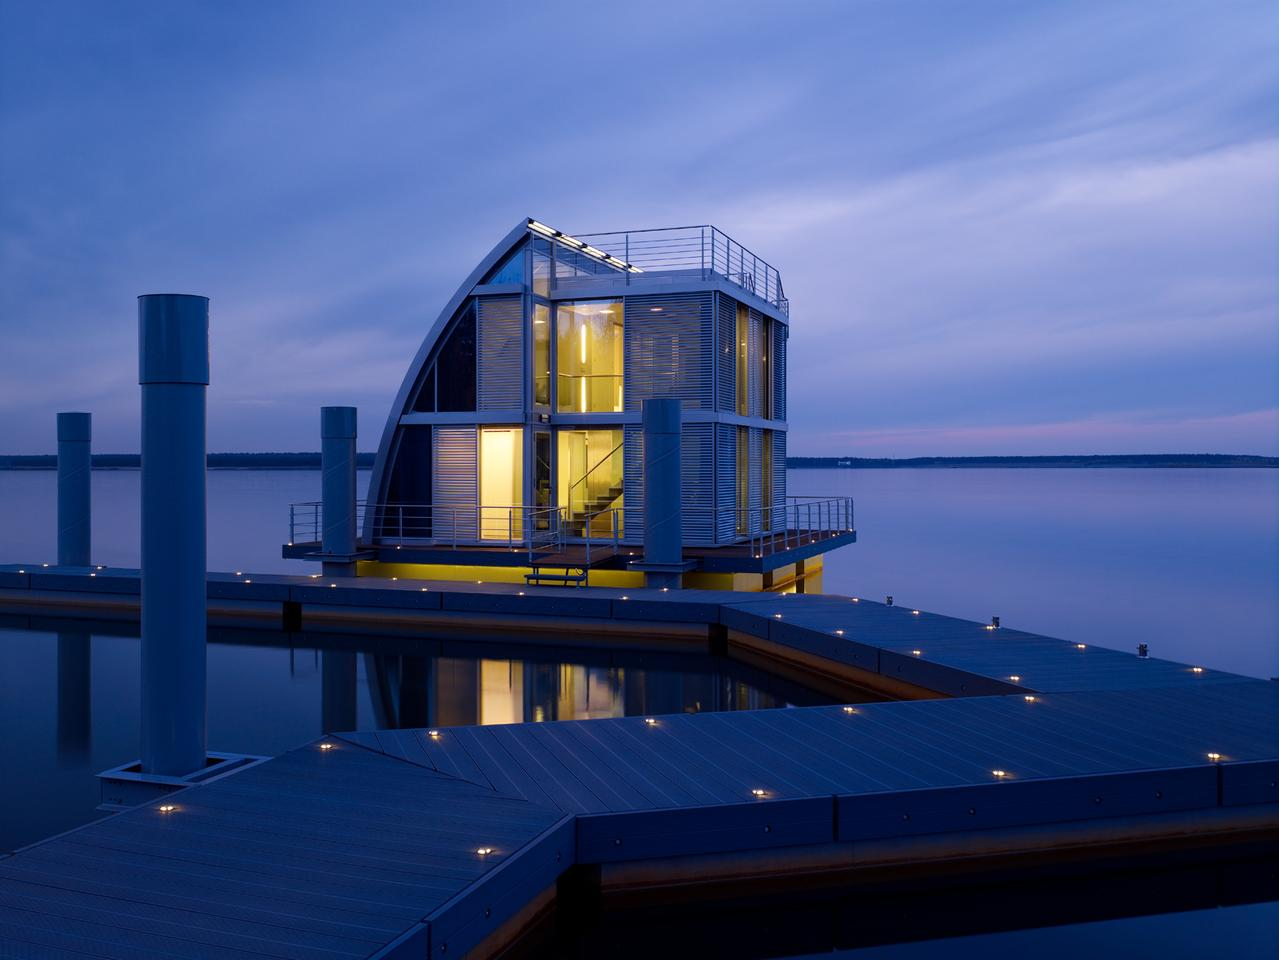 Steeltec37's Module House Ark (or floating home) is a building design that contrasts formally and functionally with conventional homes